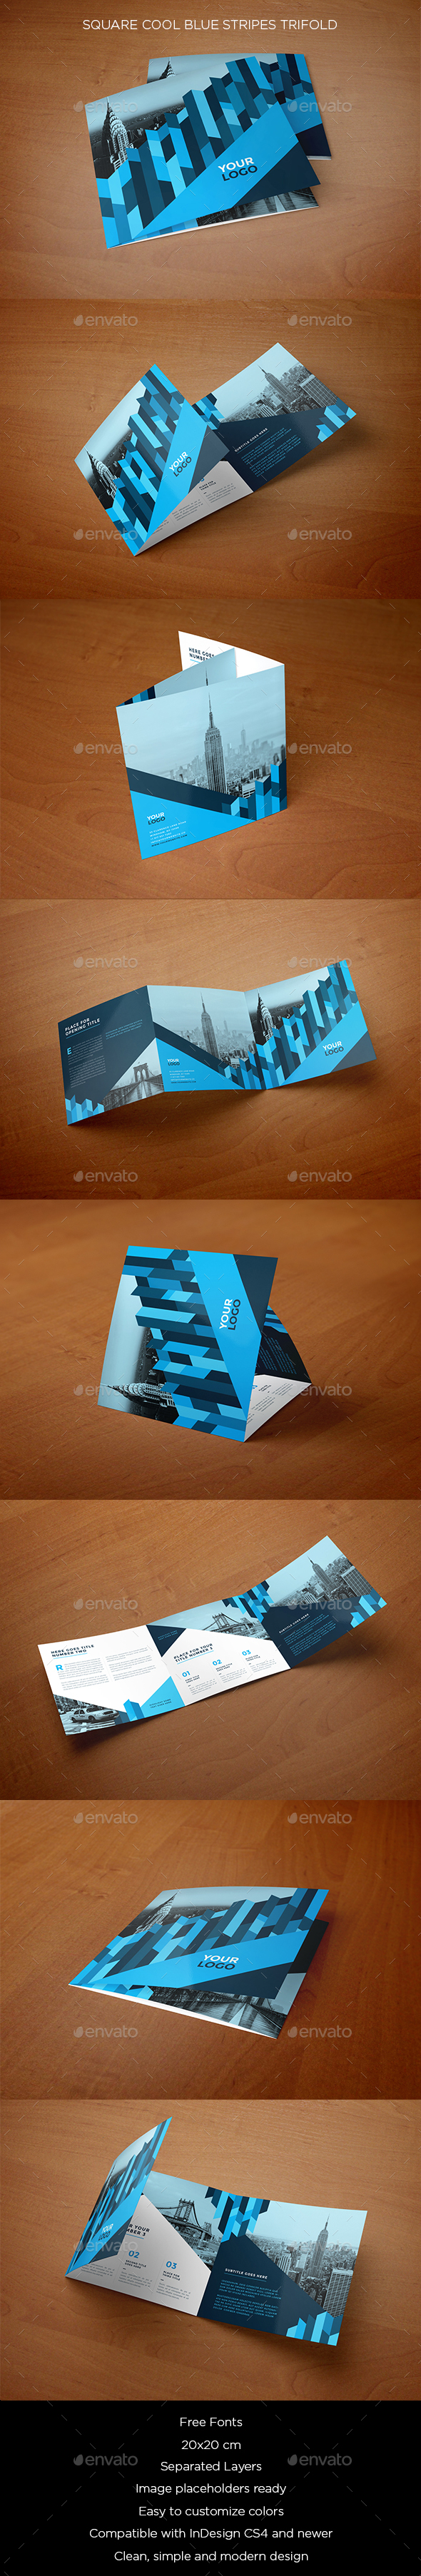 Square Cool Blue Stripes Trifold - Brochures Print Templates